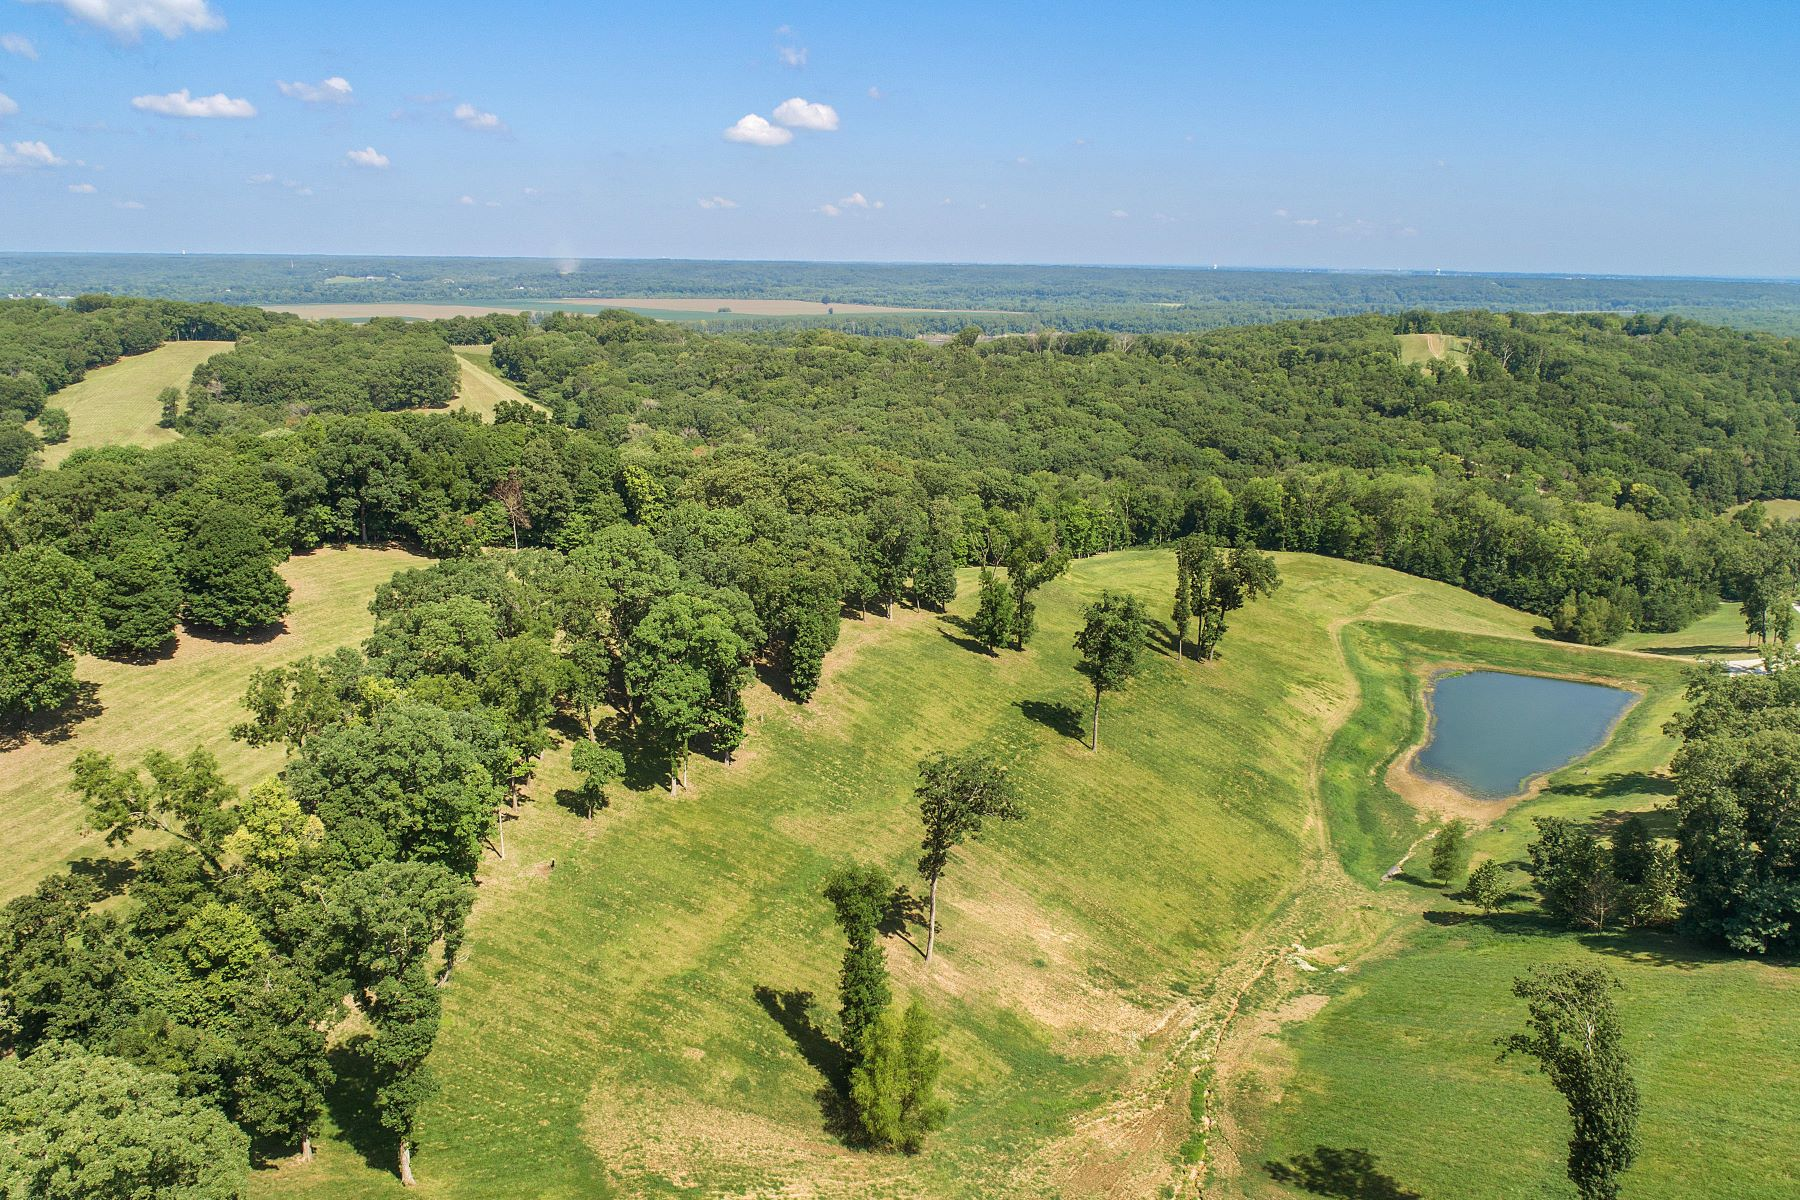 Land for Sale at 19300 Puellman Road, Wildwood, MO 63005 19300 Puellman Road Wildwood, Missouri 63005 United States